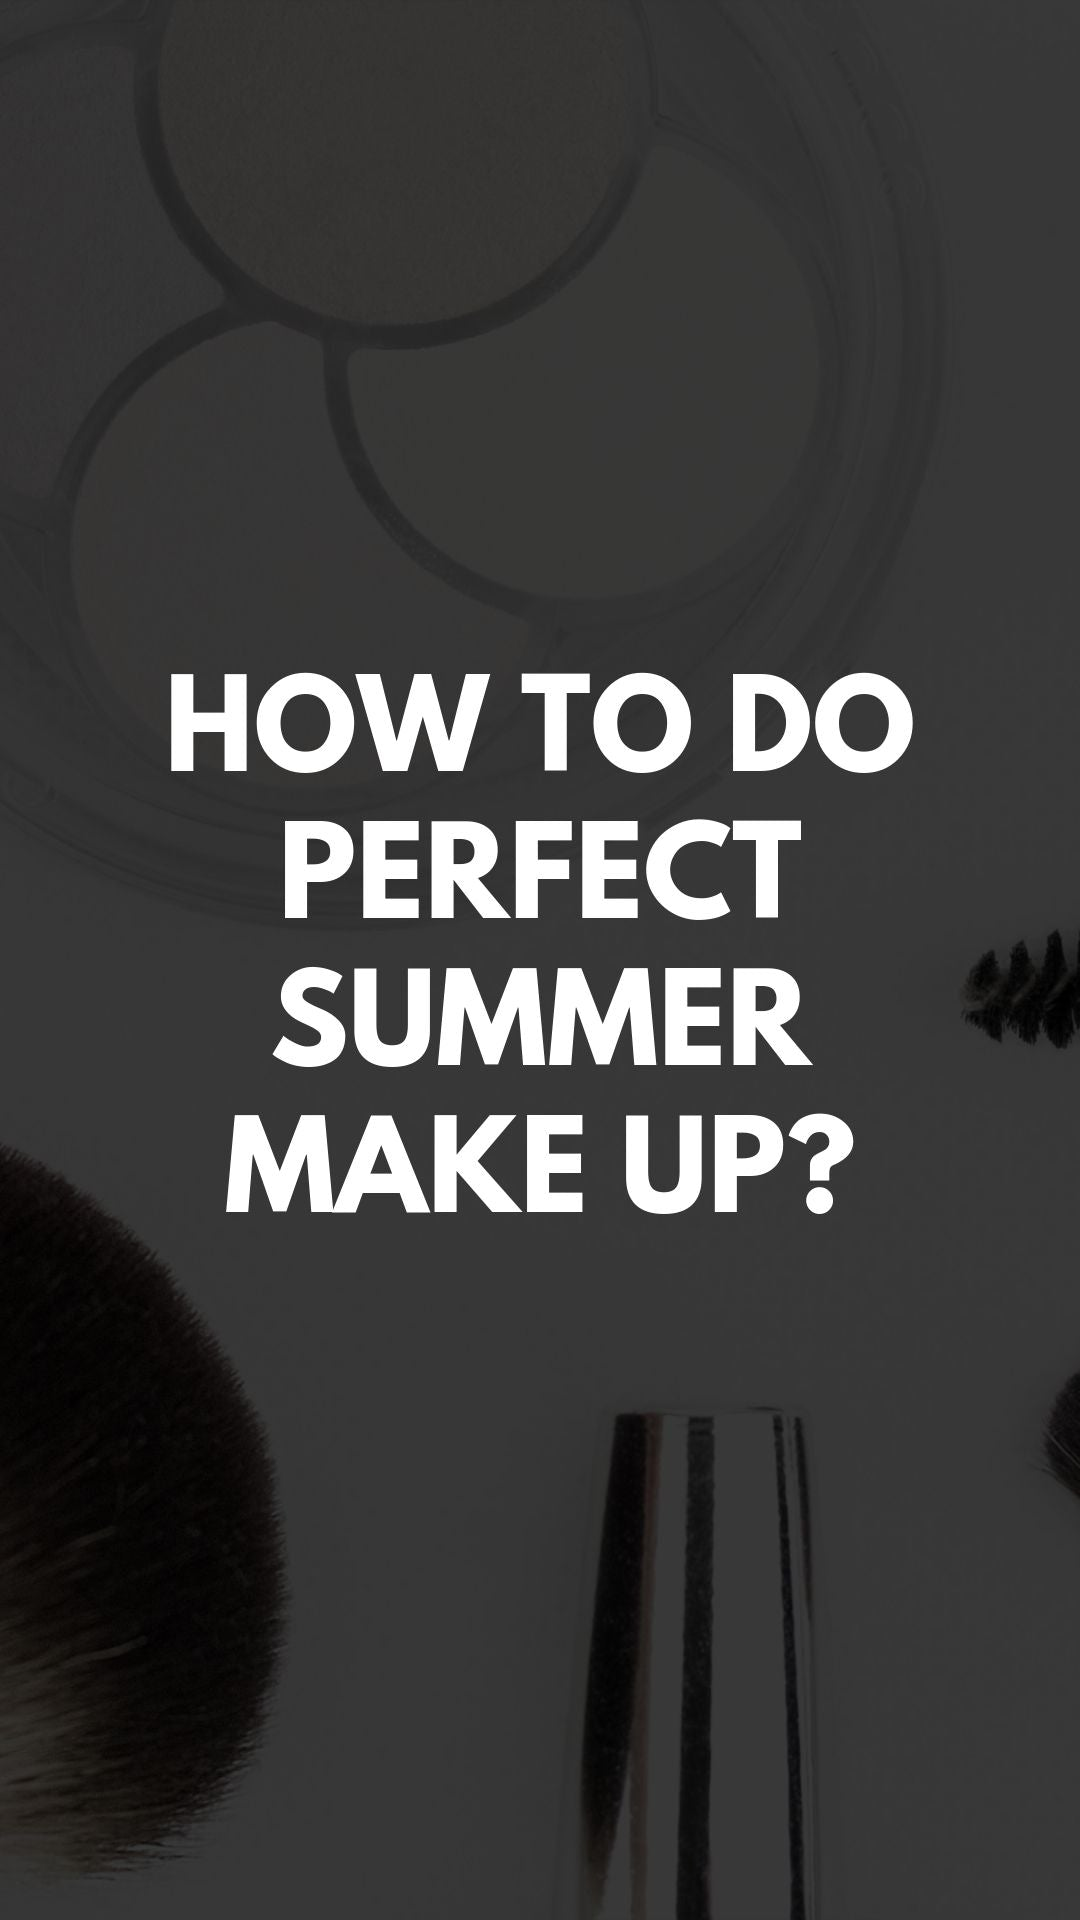 How To Do Perfect Summer Make Up?